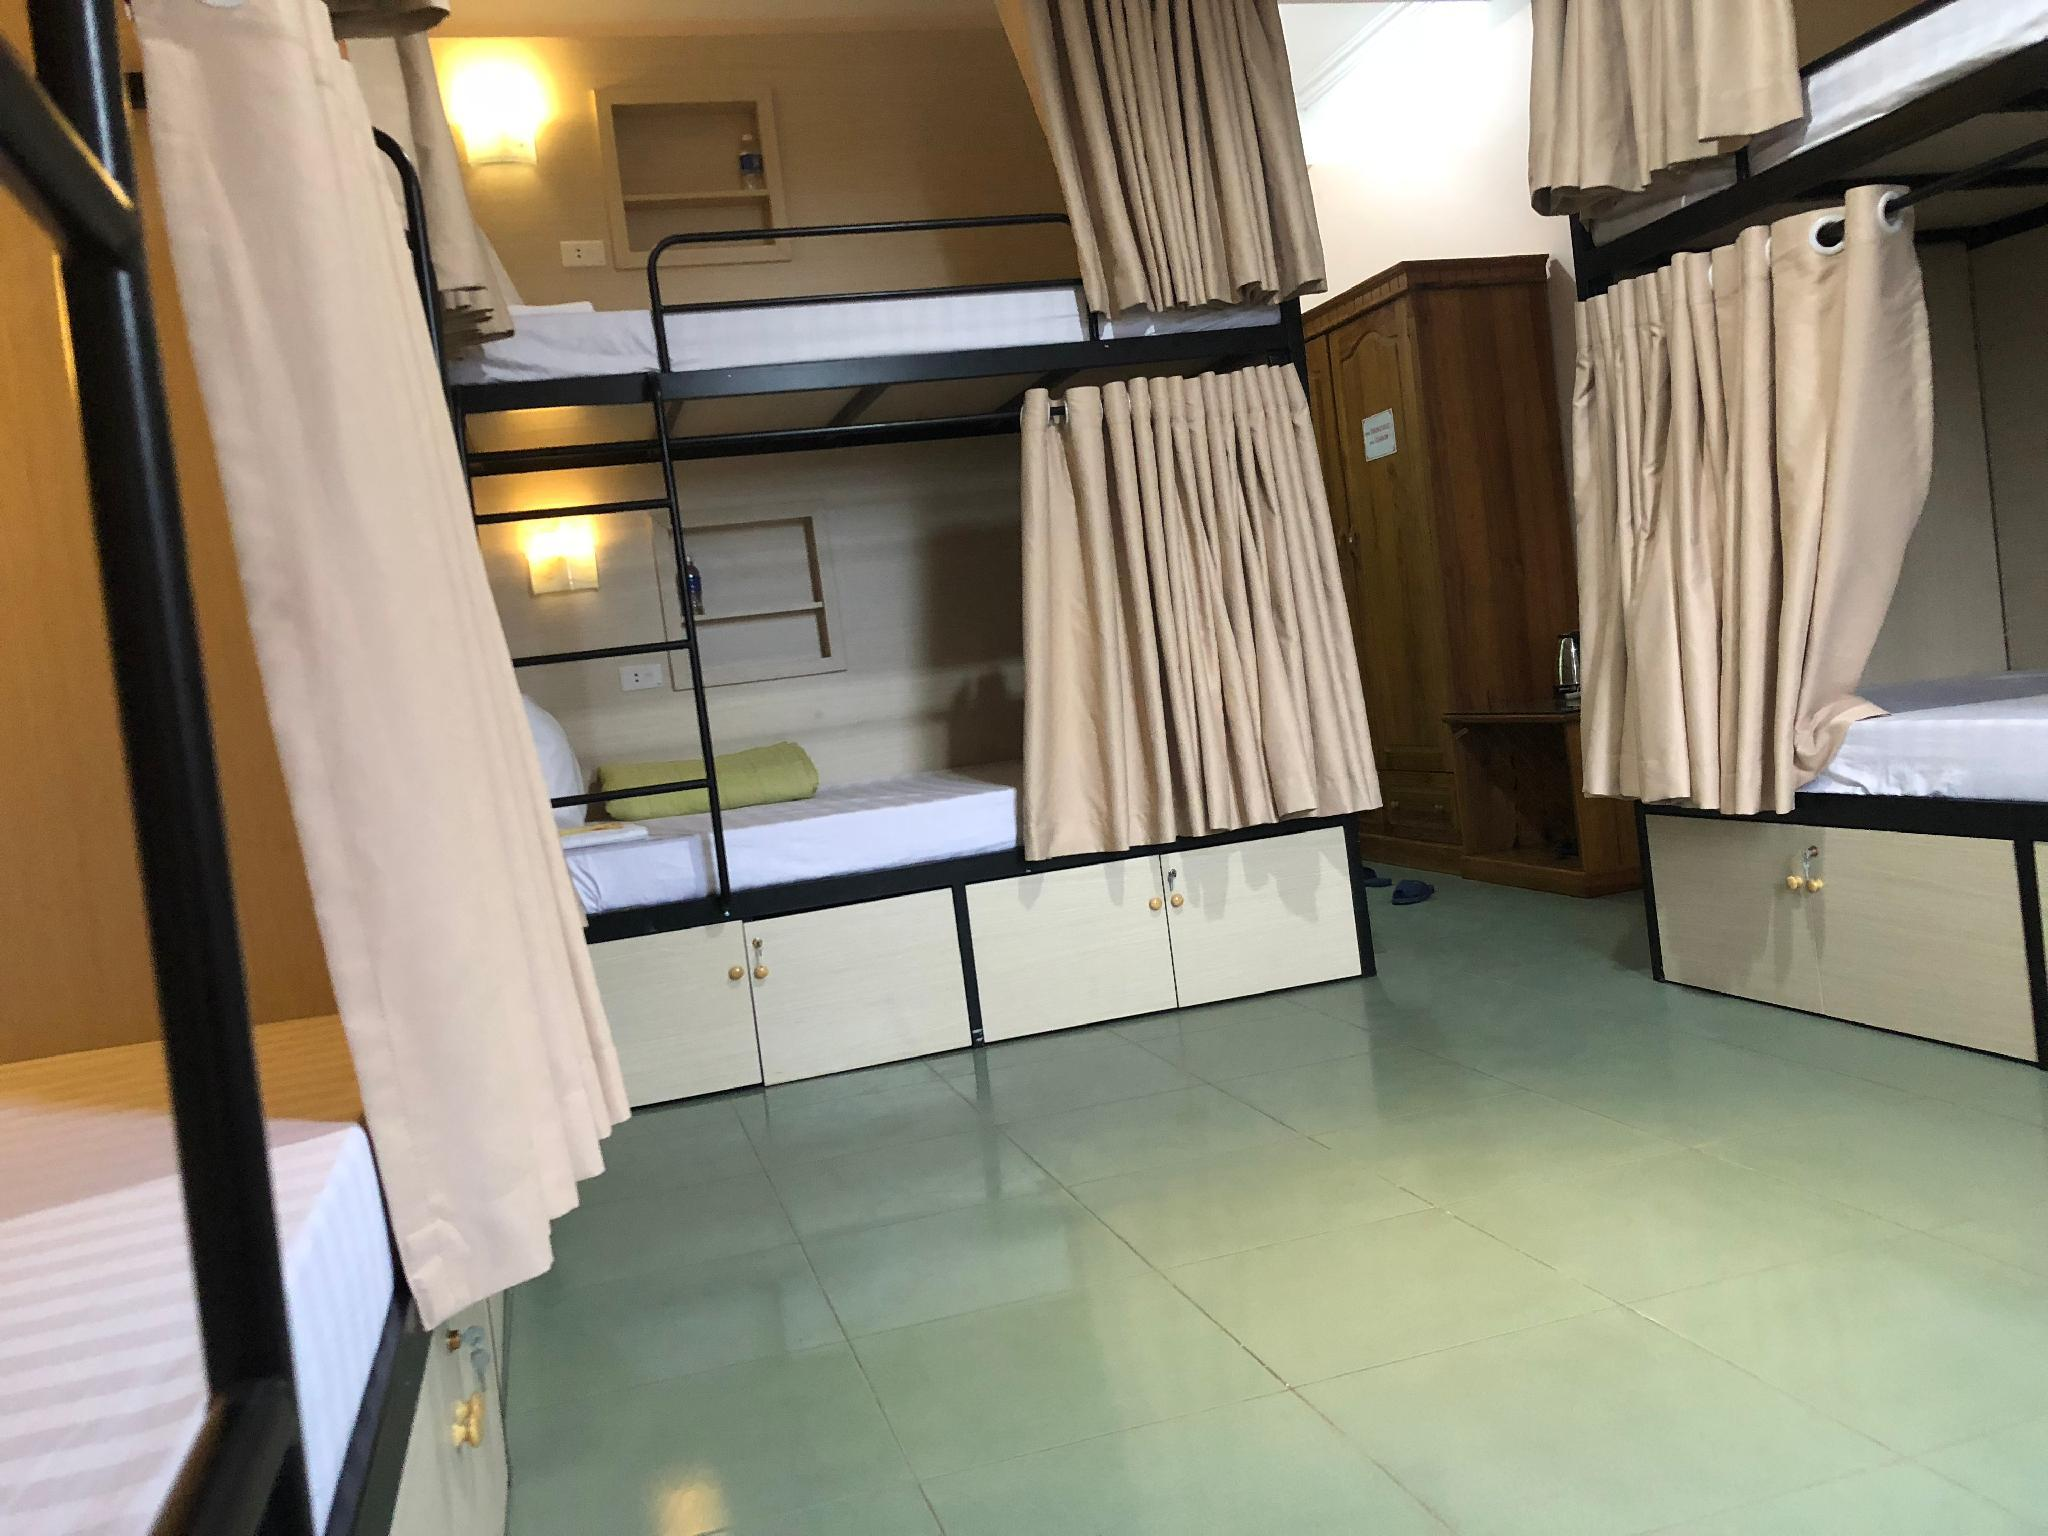 Bed in 6-Bed Dormitory